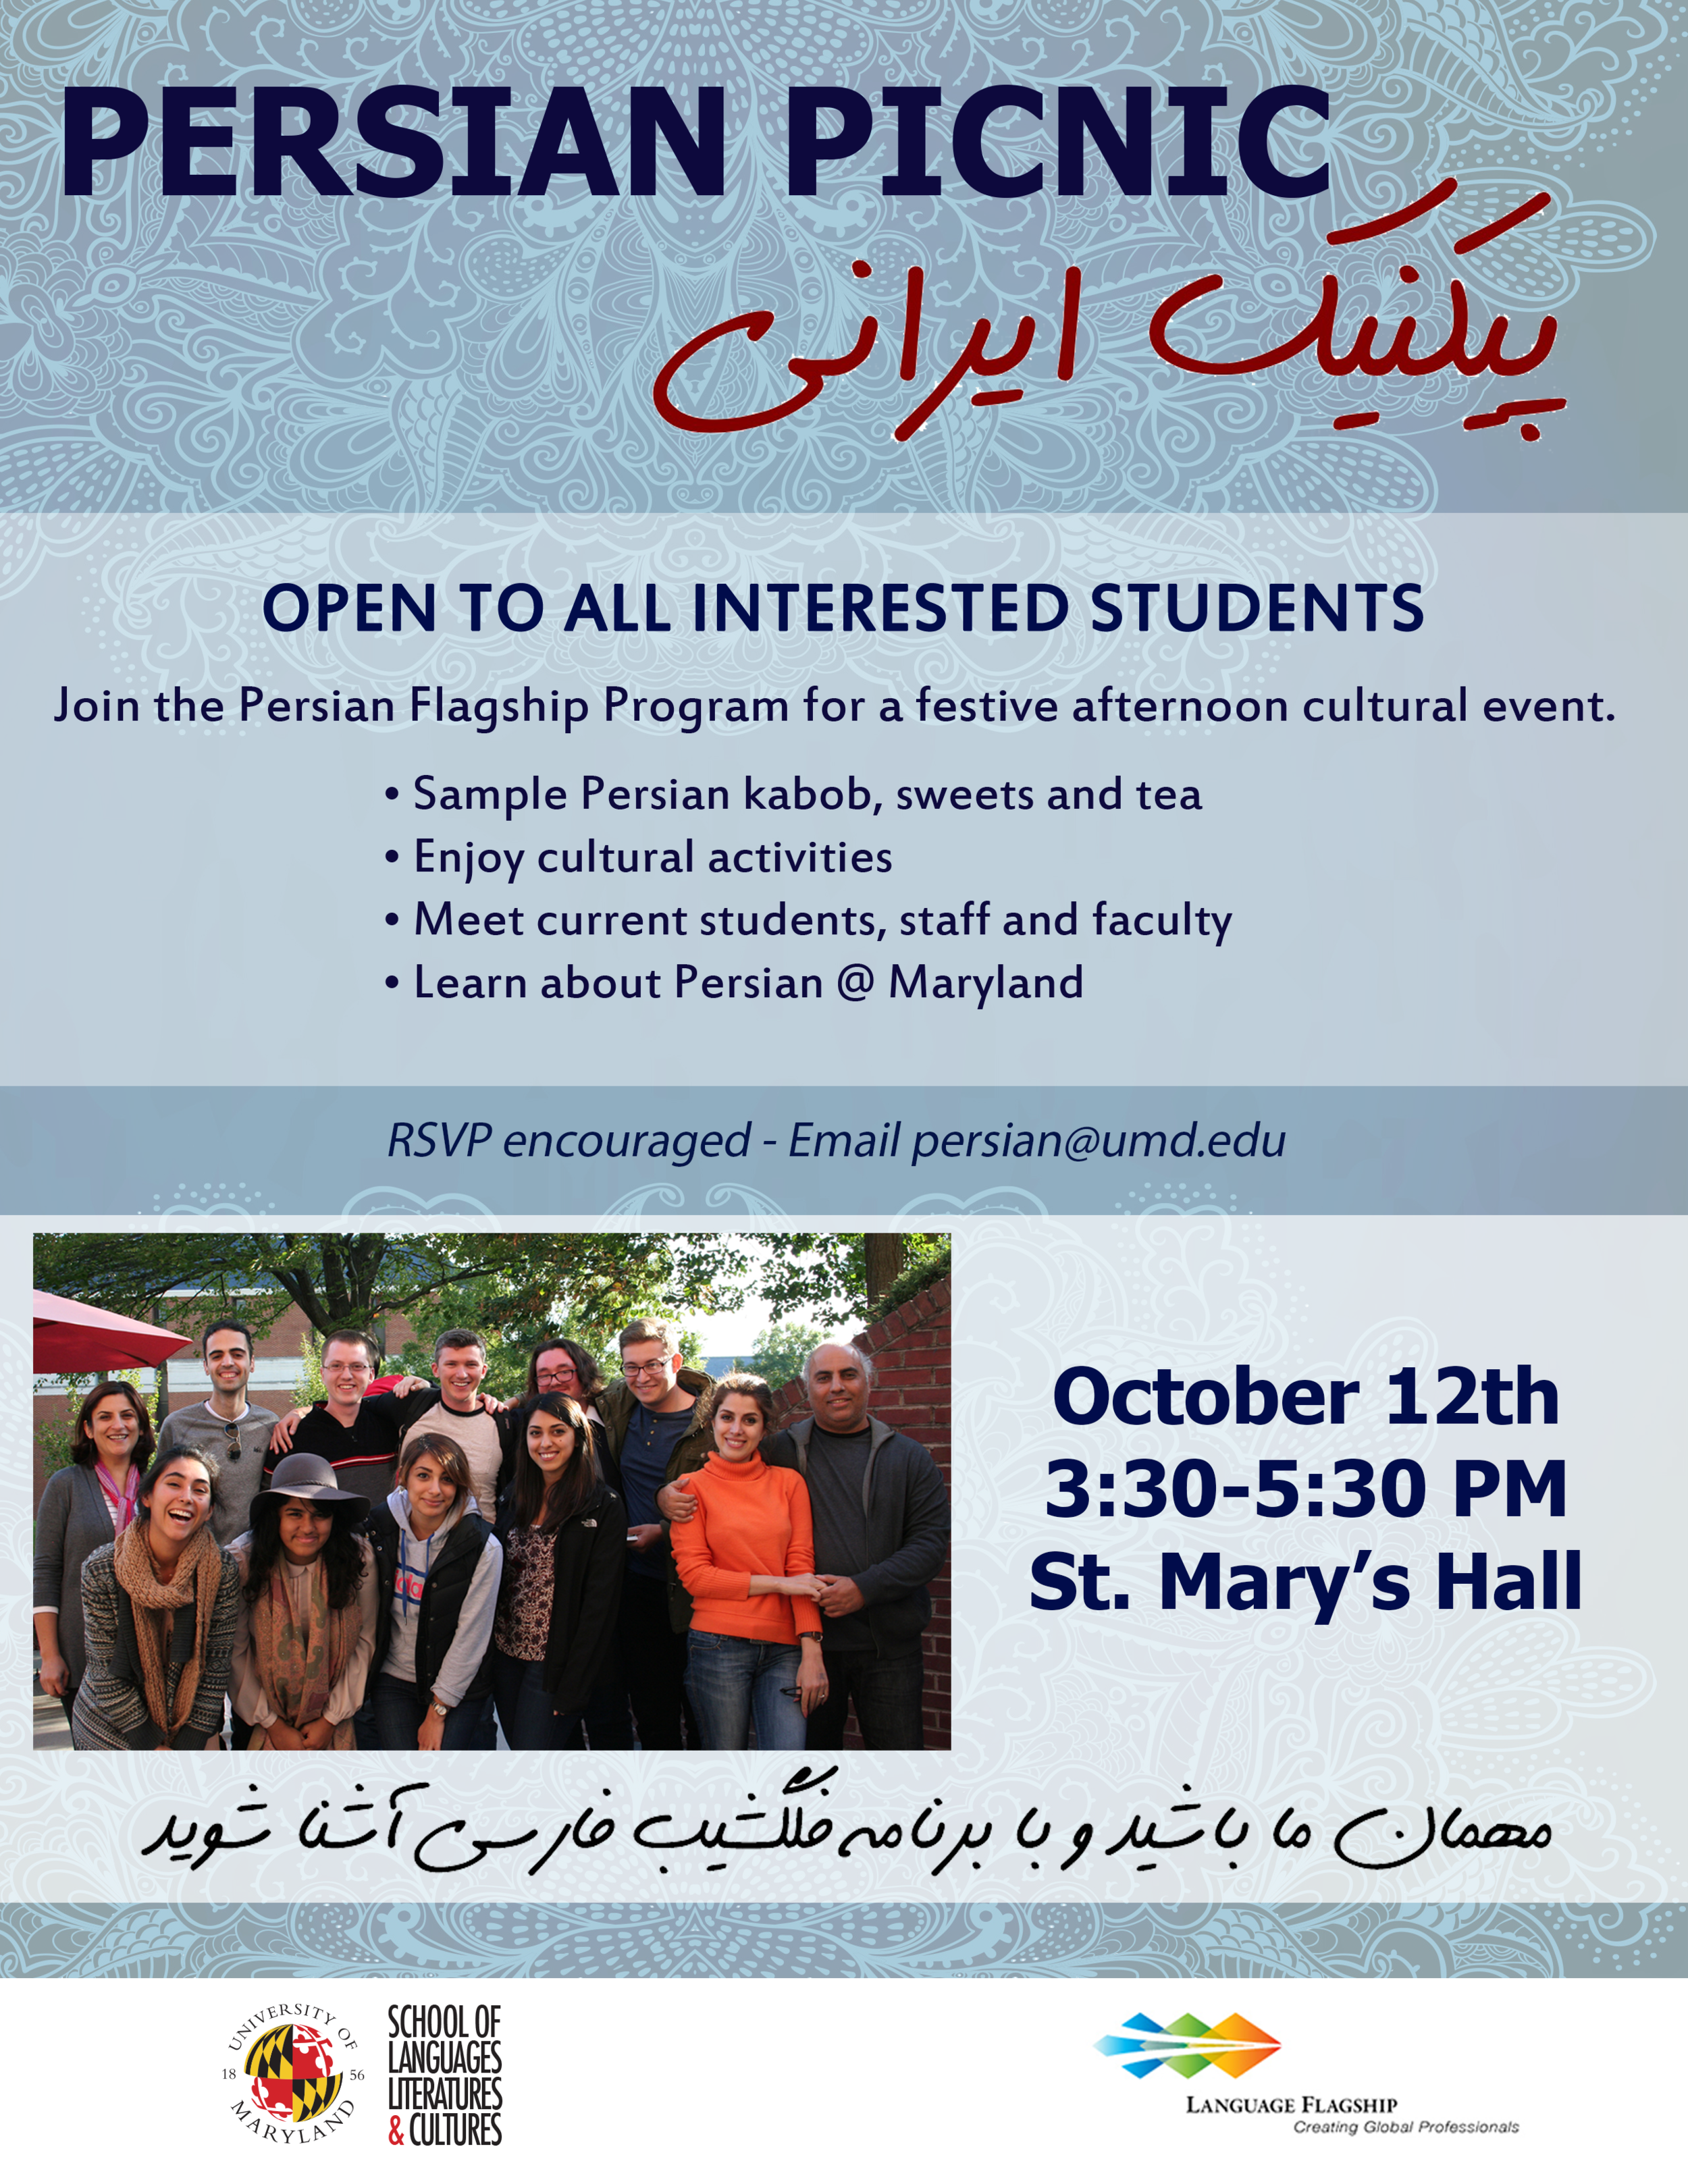 Persian Picnic Flyer (1).png